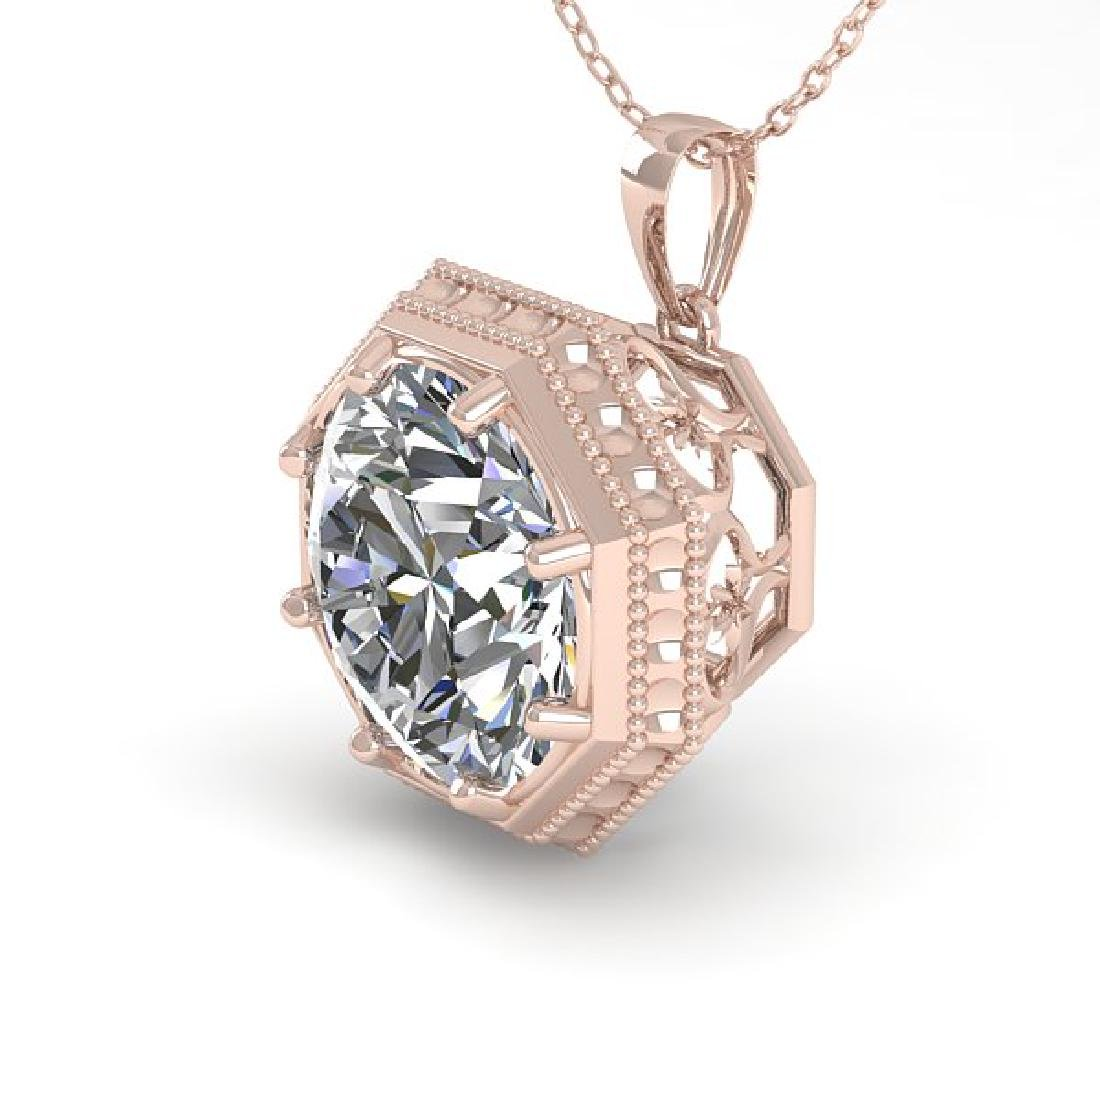 1 CTW VS/SI Diamond Solitaire Necklace 14K Rose Gold